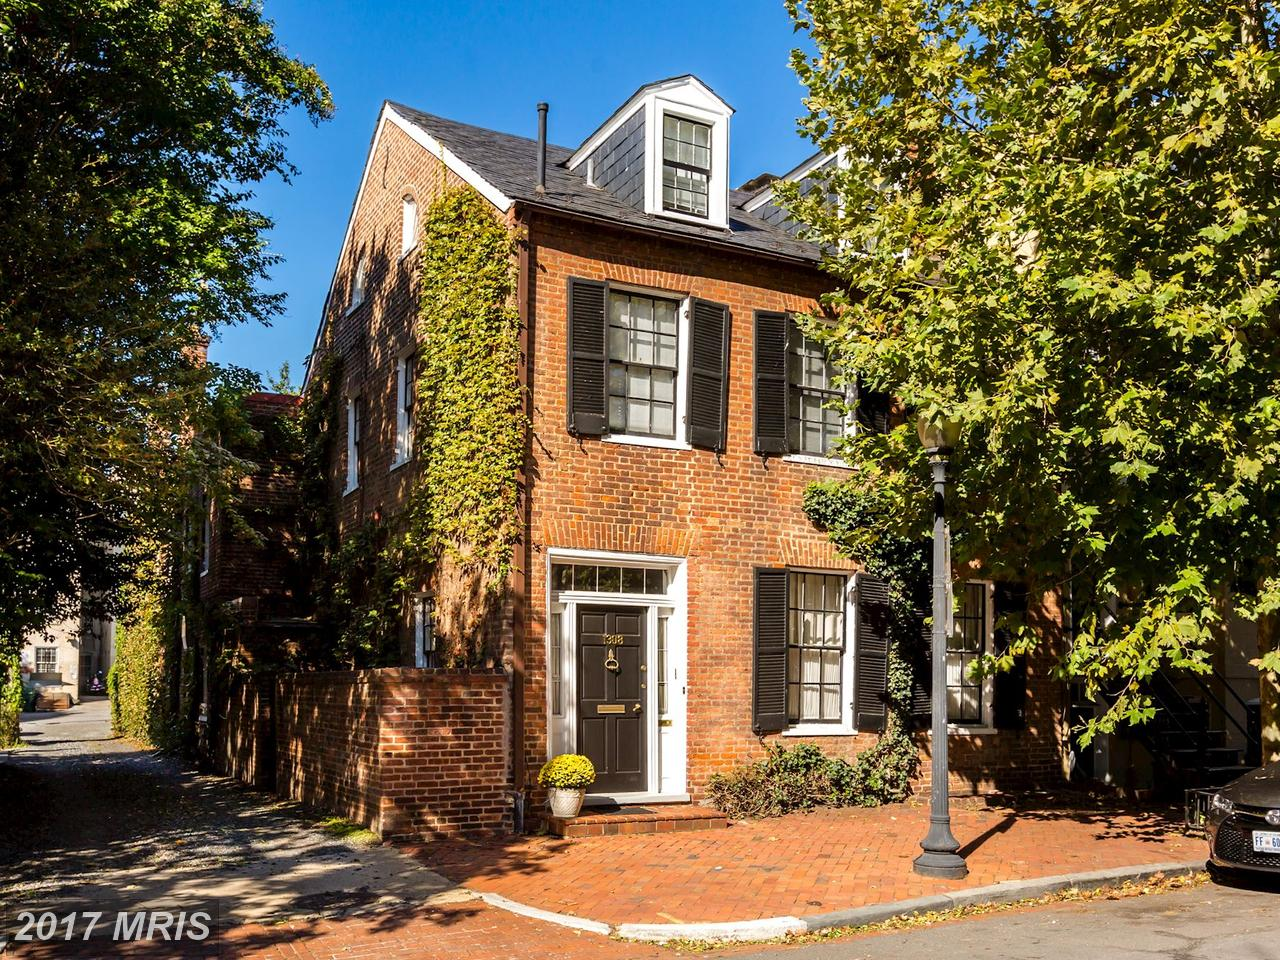 Single Family Home for Sale at Federal, Semi-Detached - WASHINGTON, DC 1308 29TH ST NW Washington, District Of Columbia,20007 United States